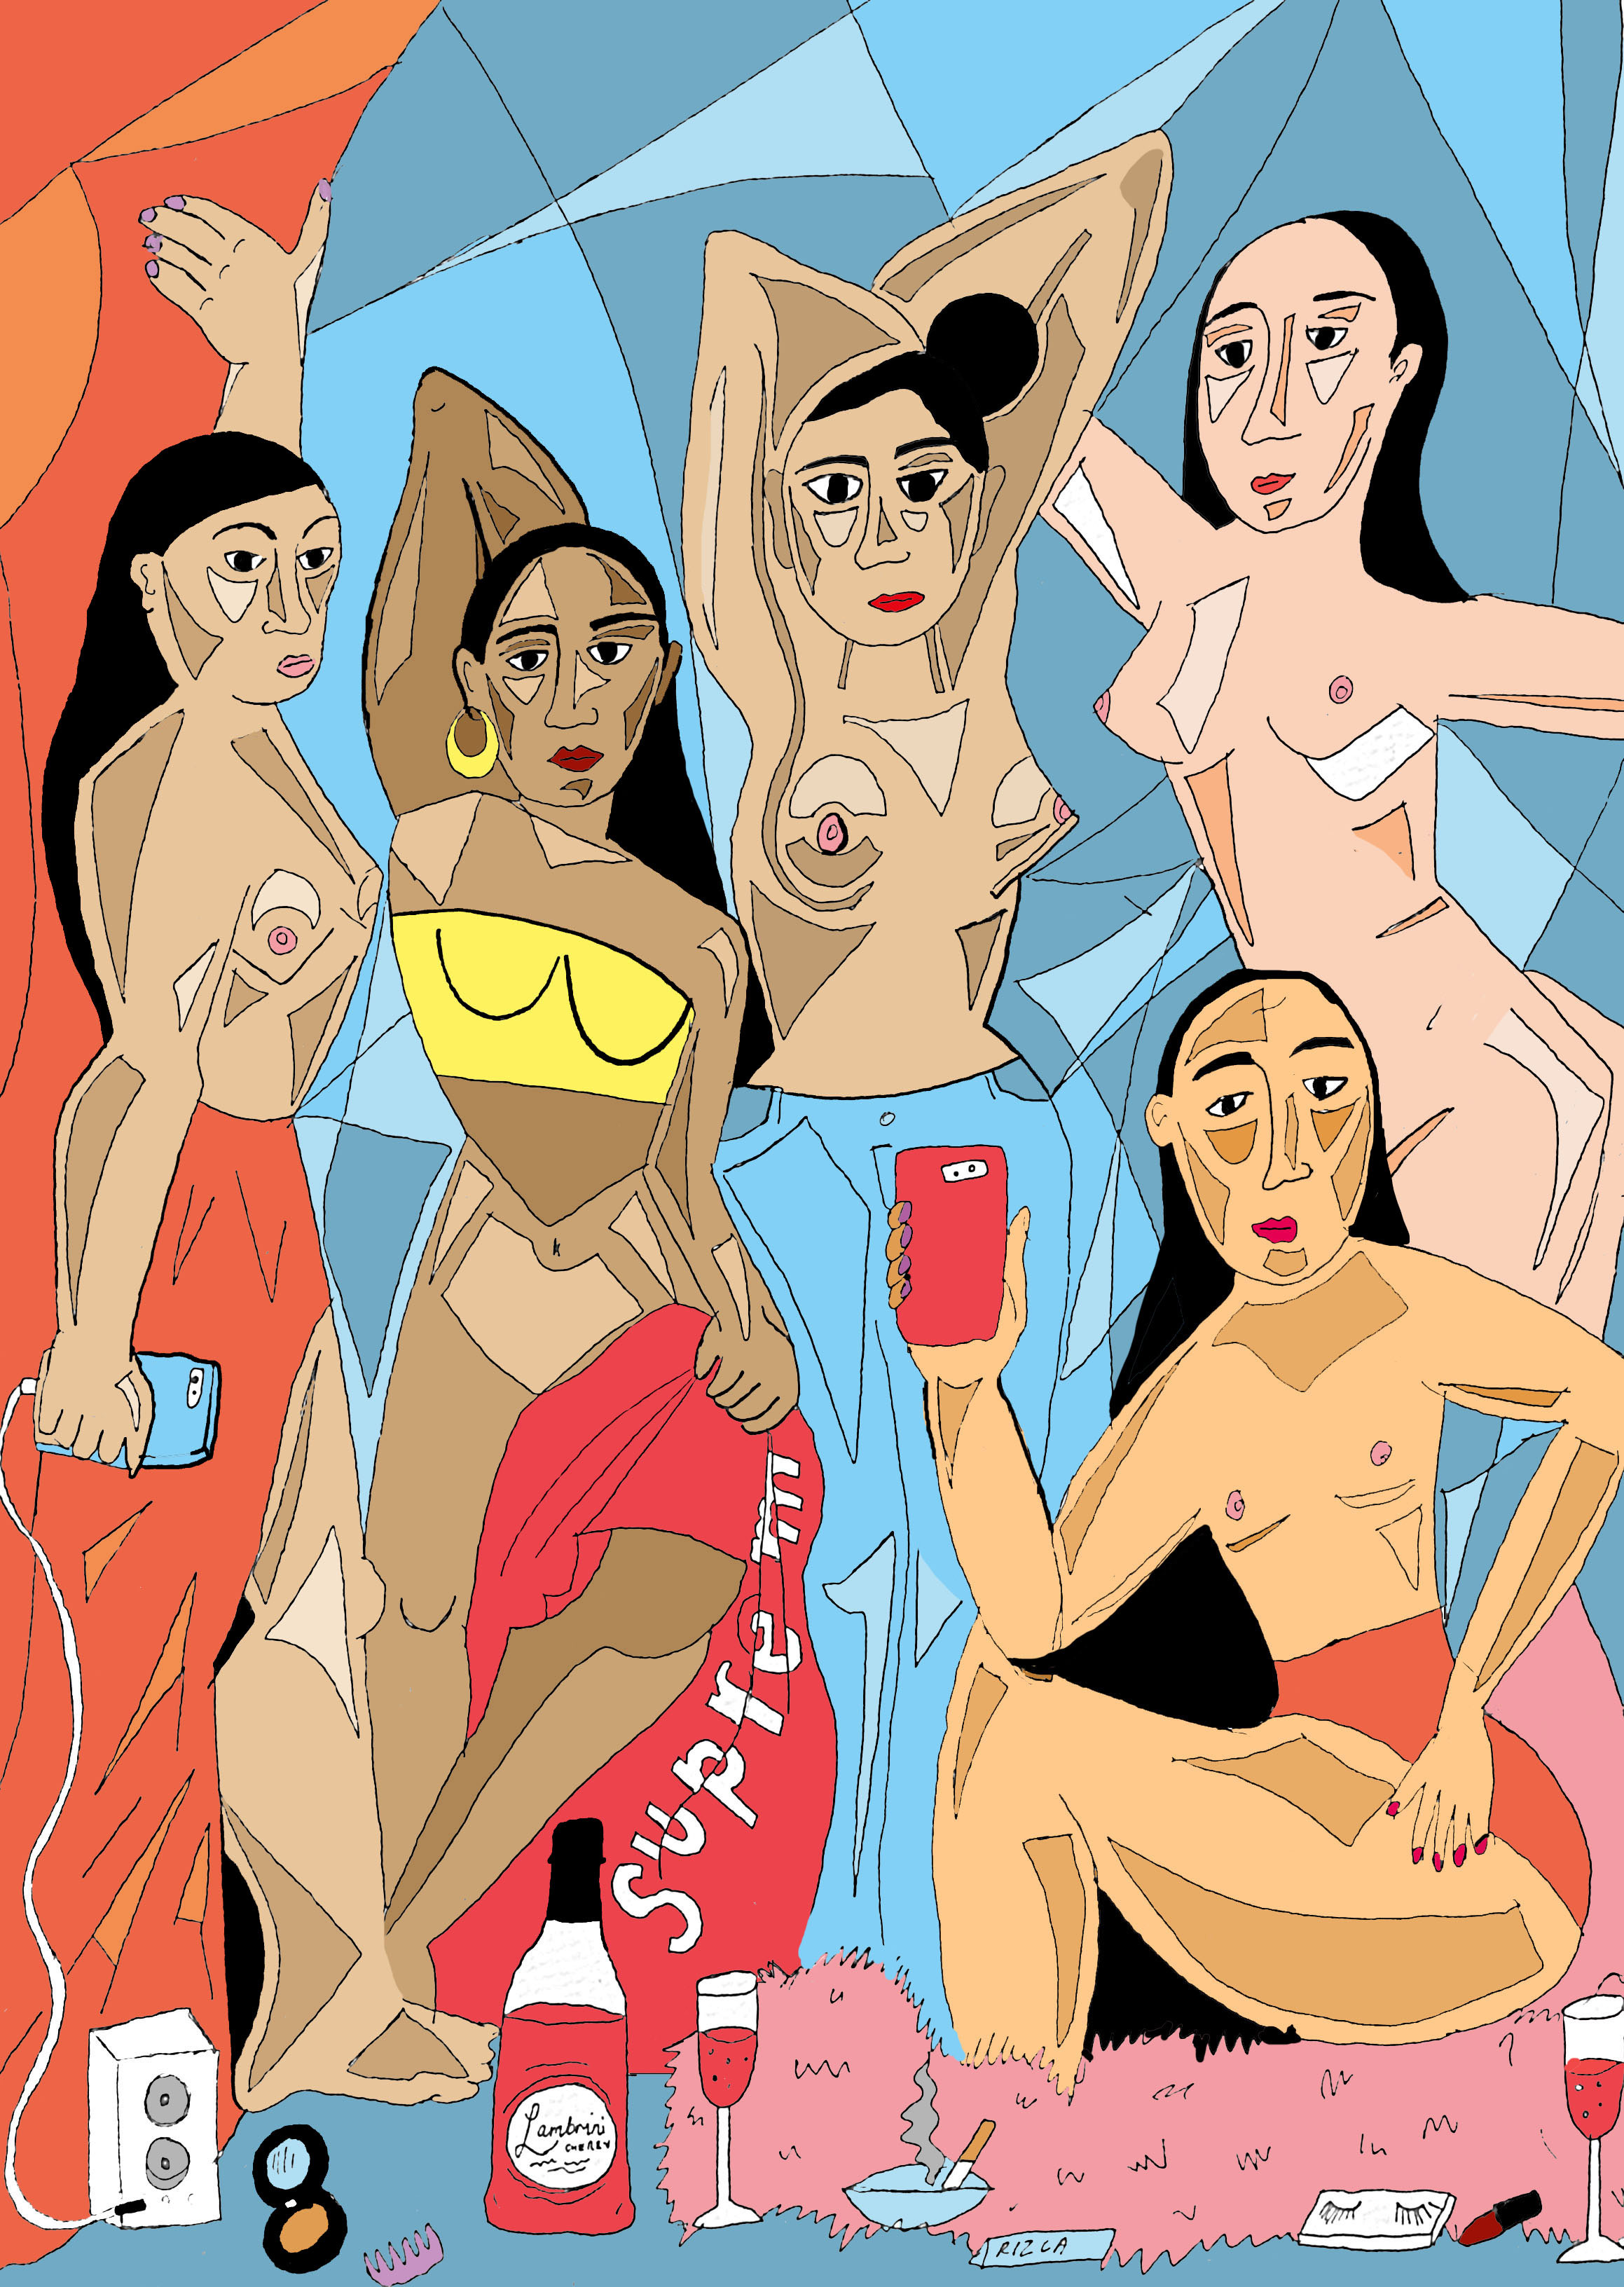 Alice Skinner, When Girls Get ready Together and Take A Group Pic, 2016, courtesy of Alice Skinner